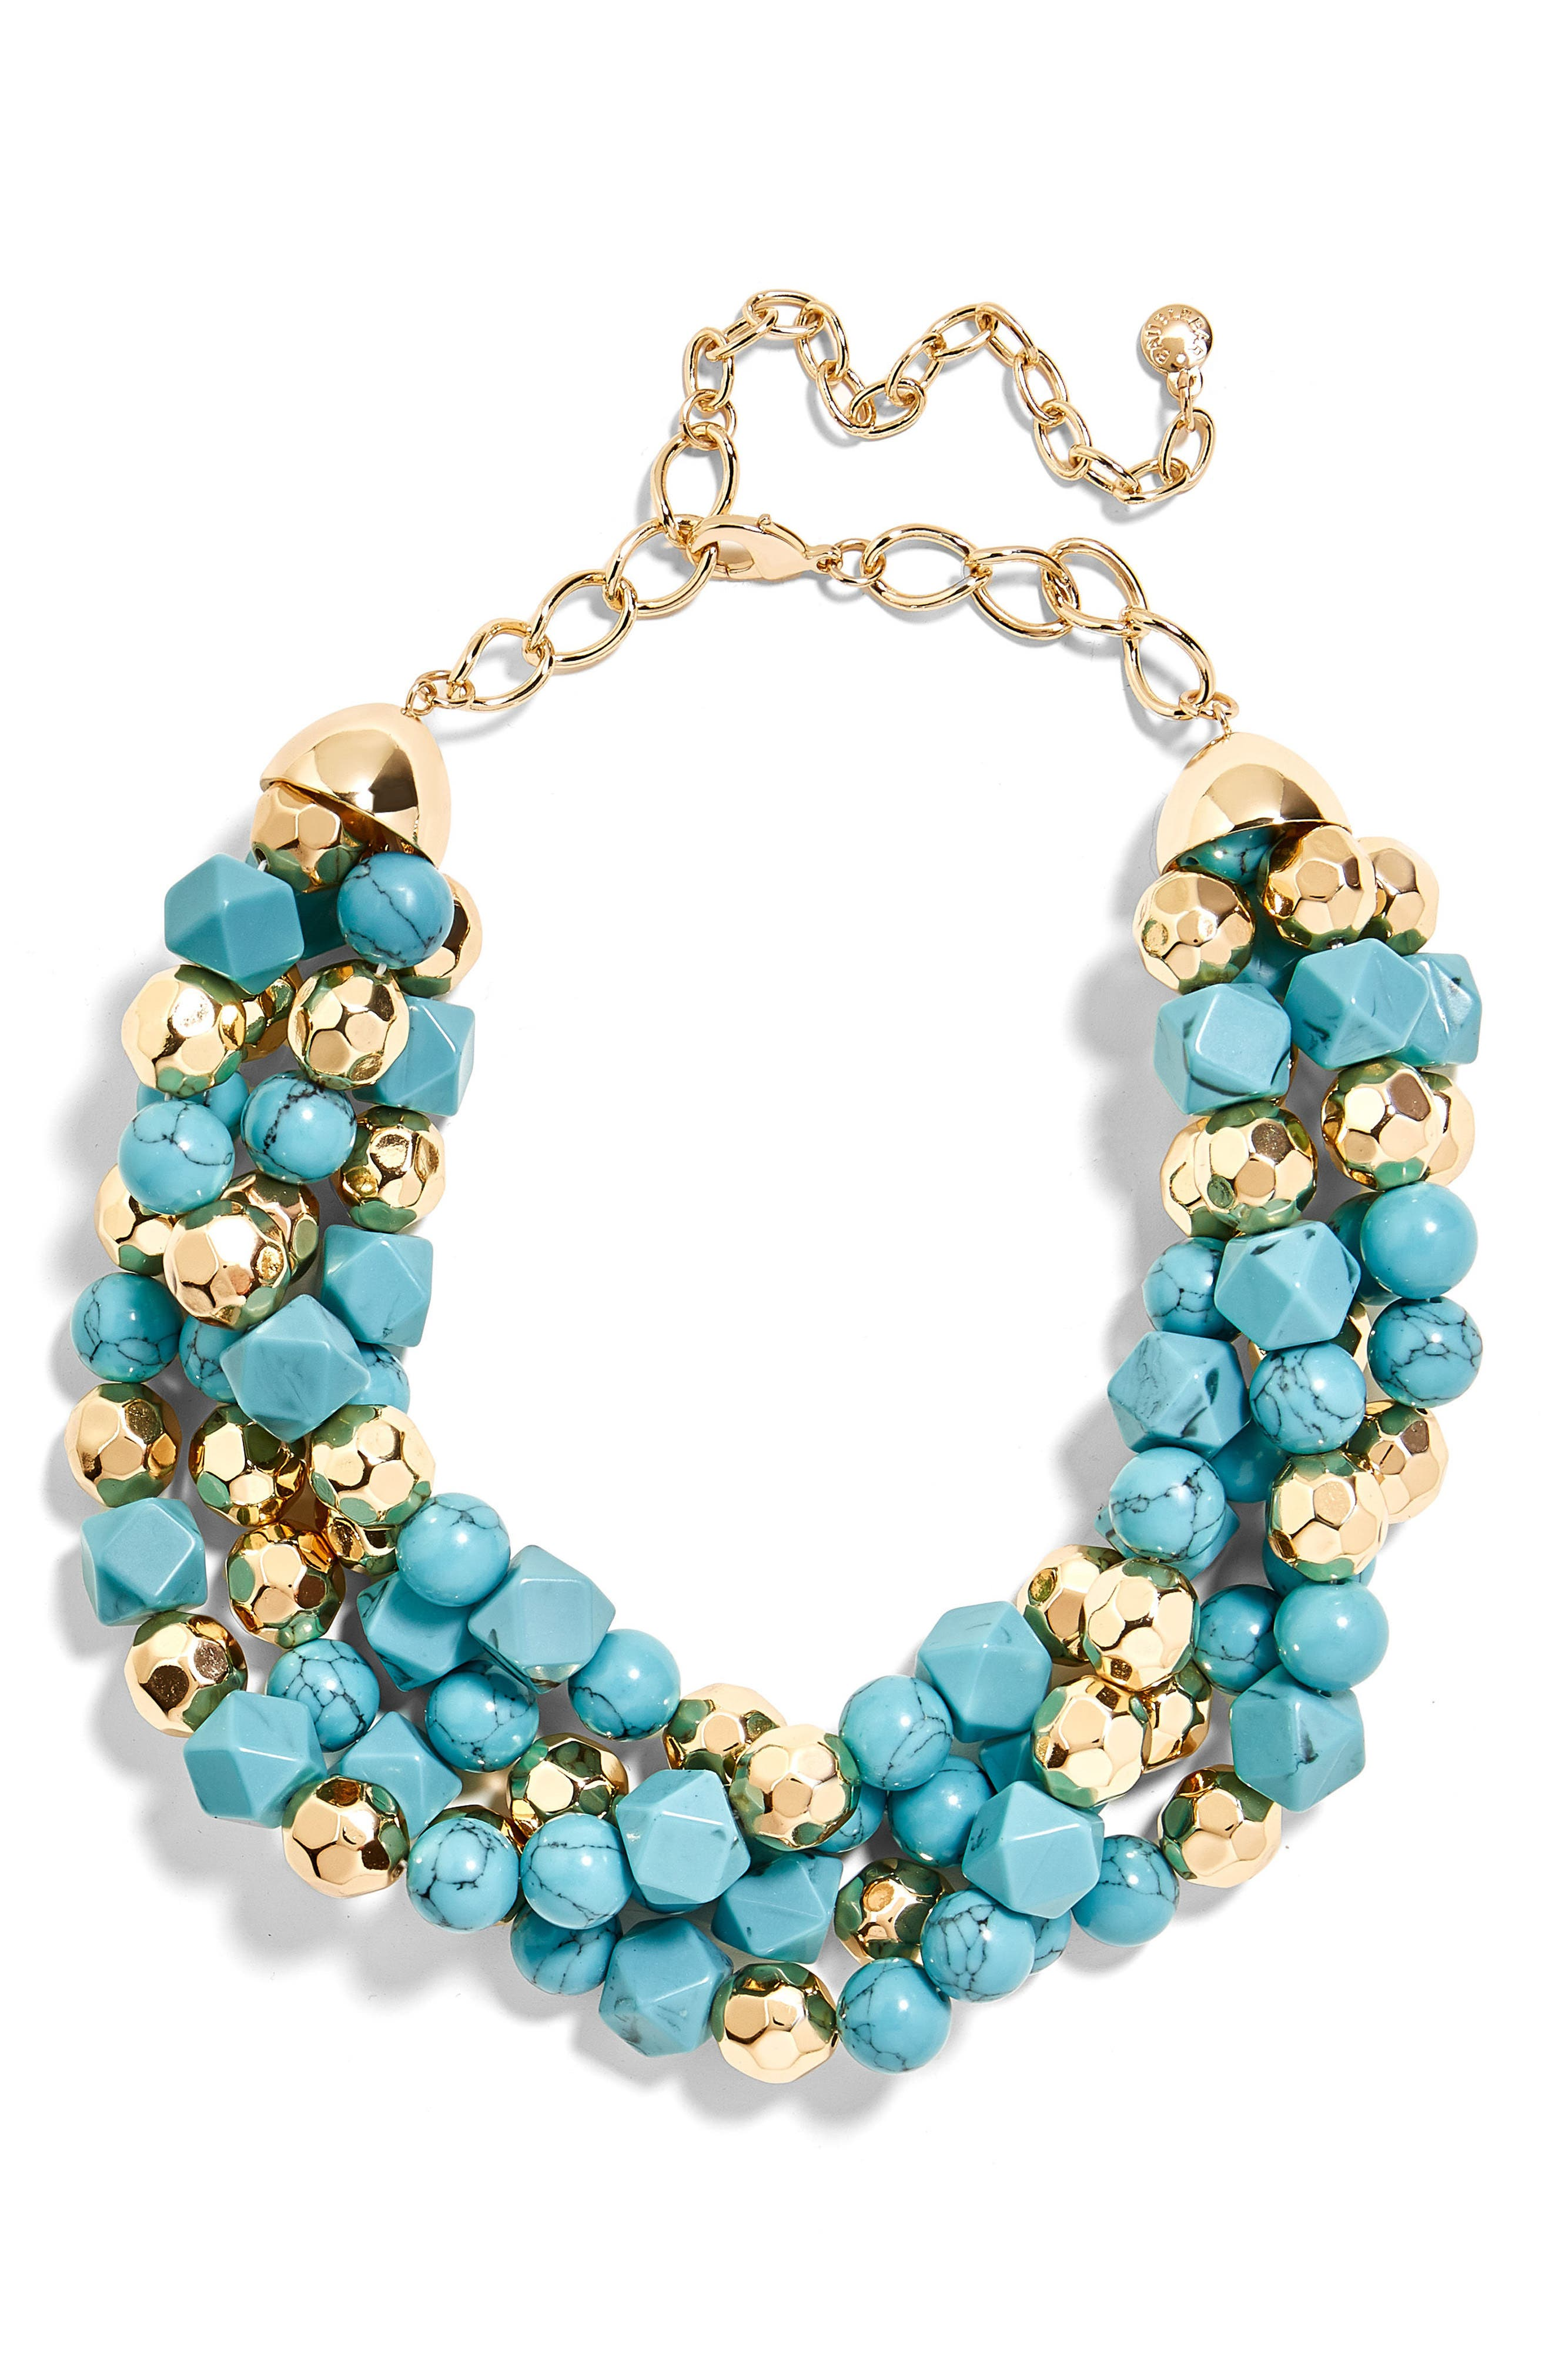 Cytherea Statement Necklace,                             Main thumbnail 1, color,                             Turquoise